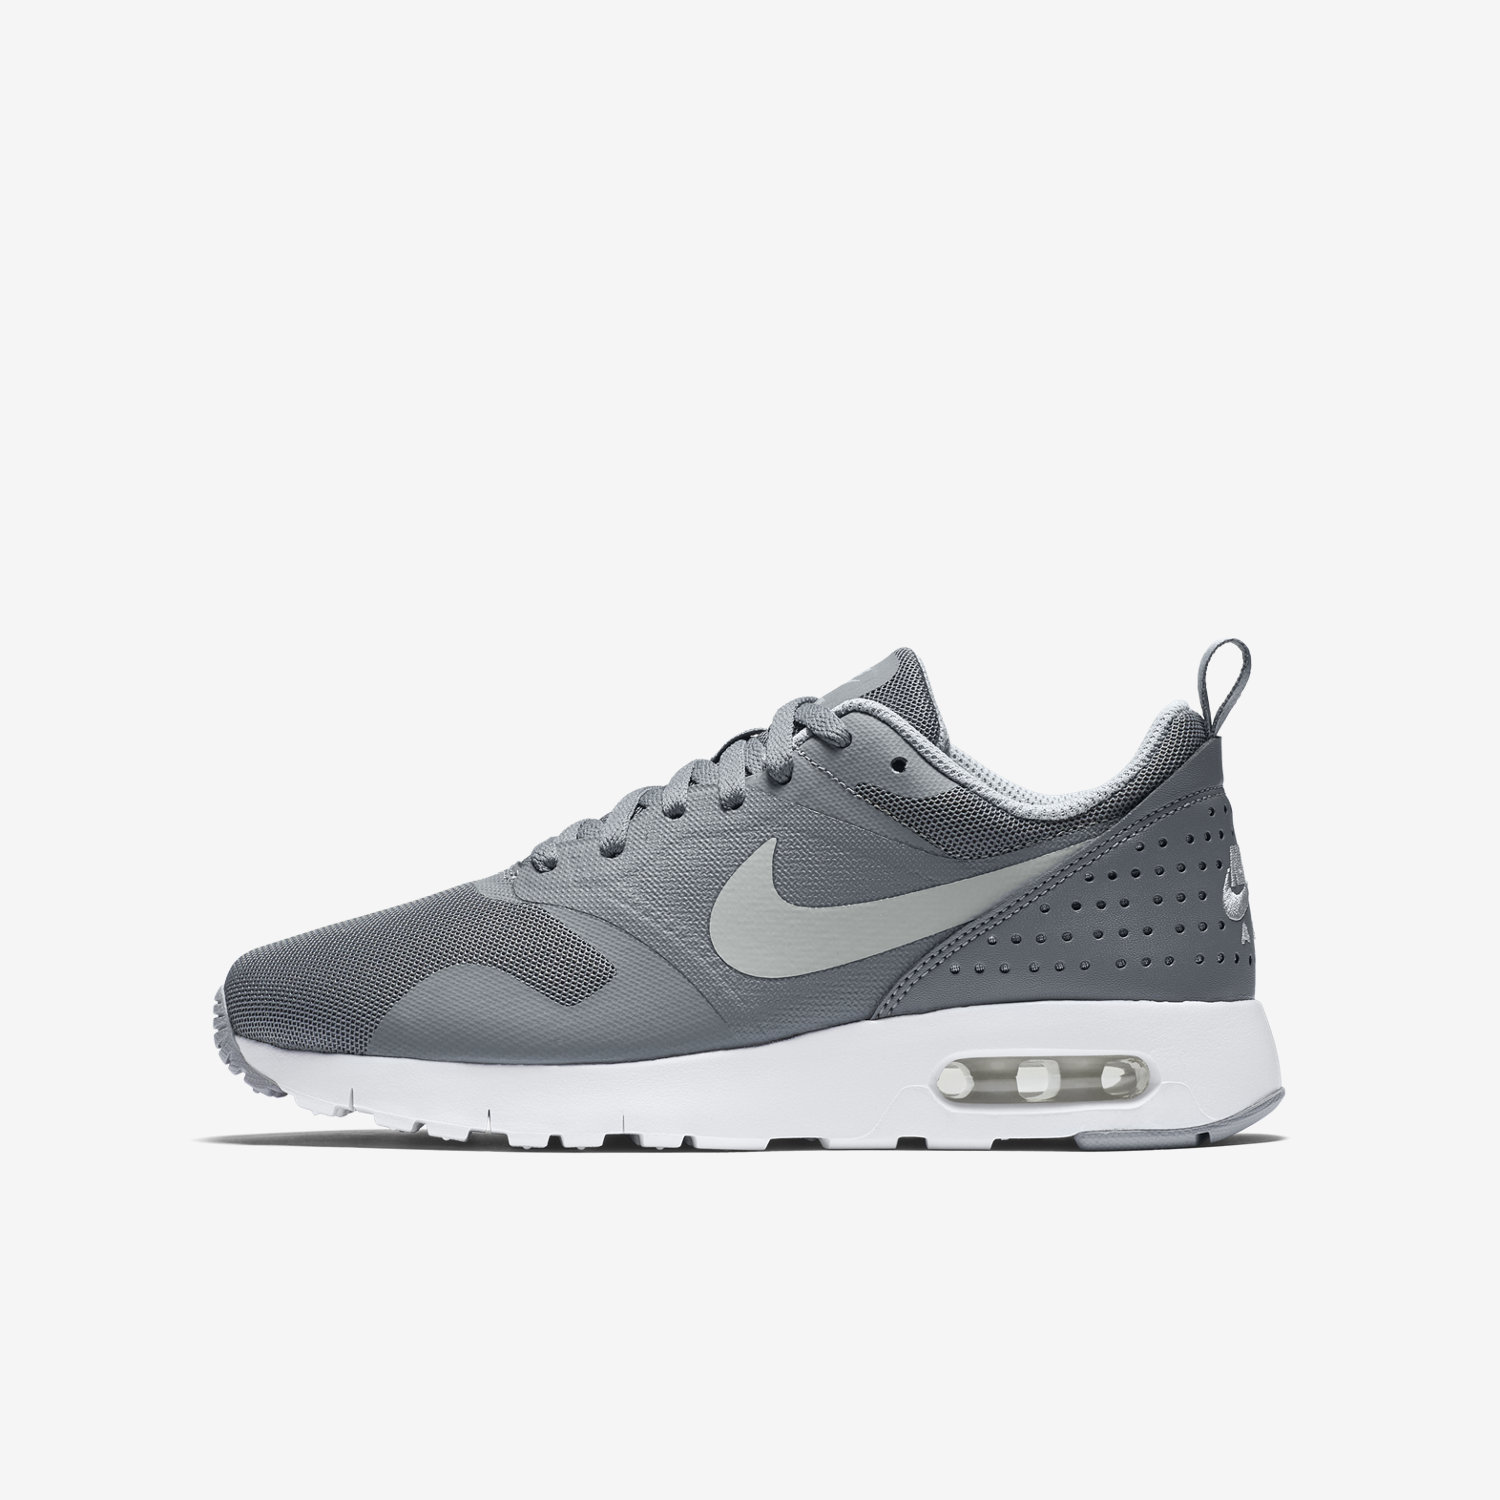 Nike Air Max Chaussure Homme Noir Nouvelle 2011 Collection Rouge